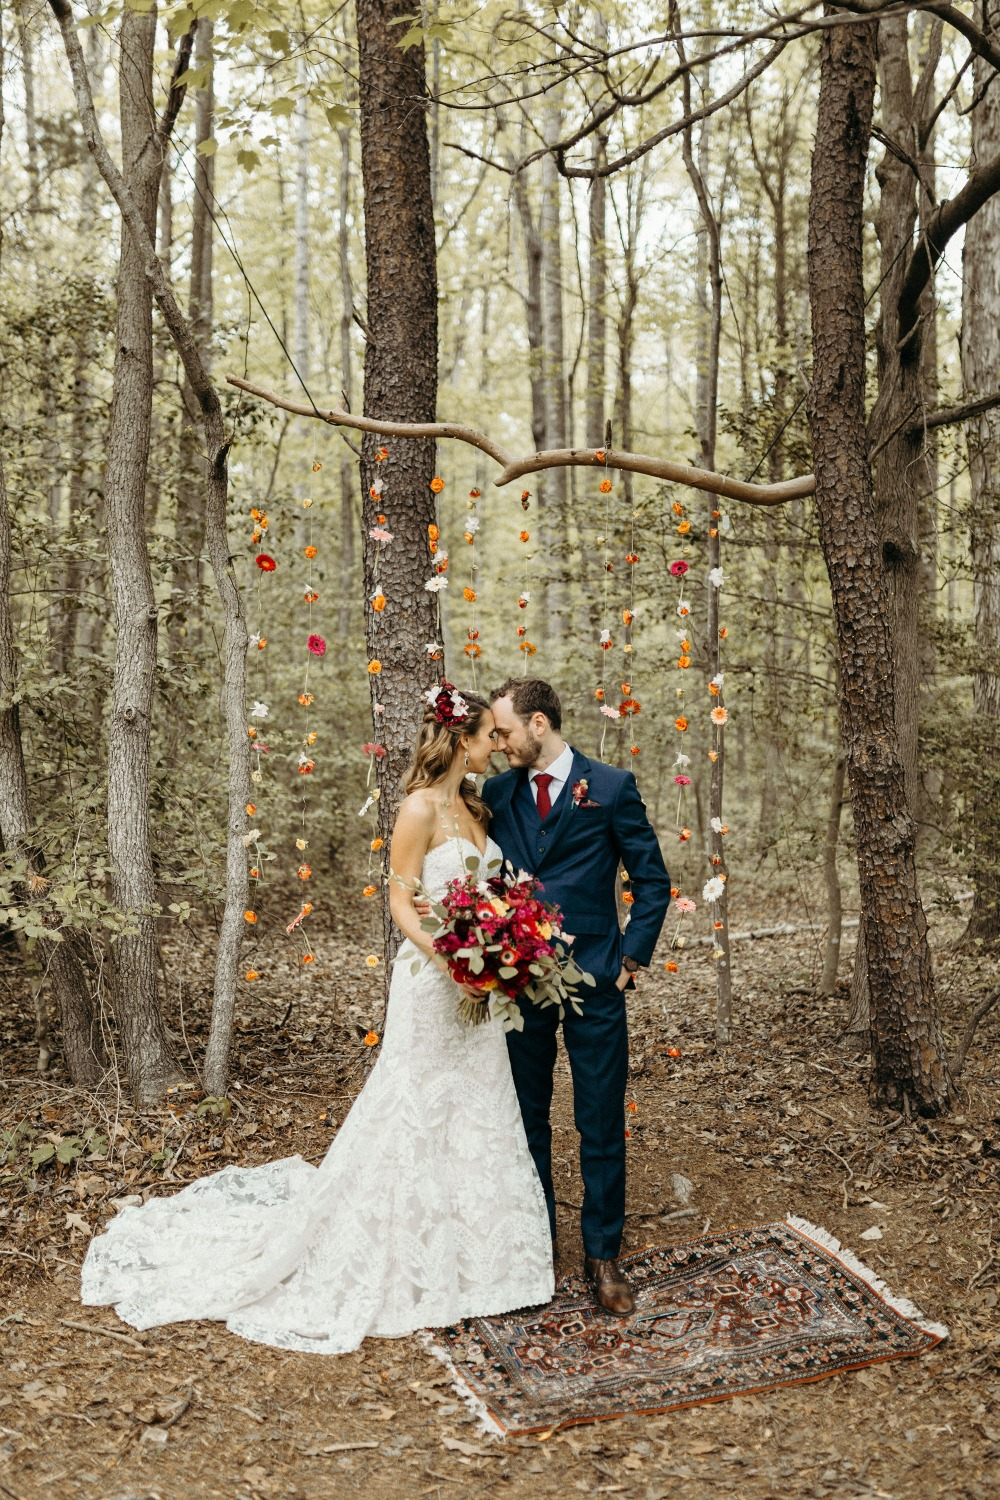 Romantic boho wedding in the woods